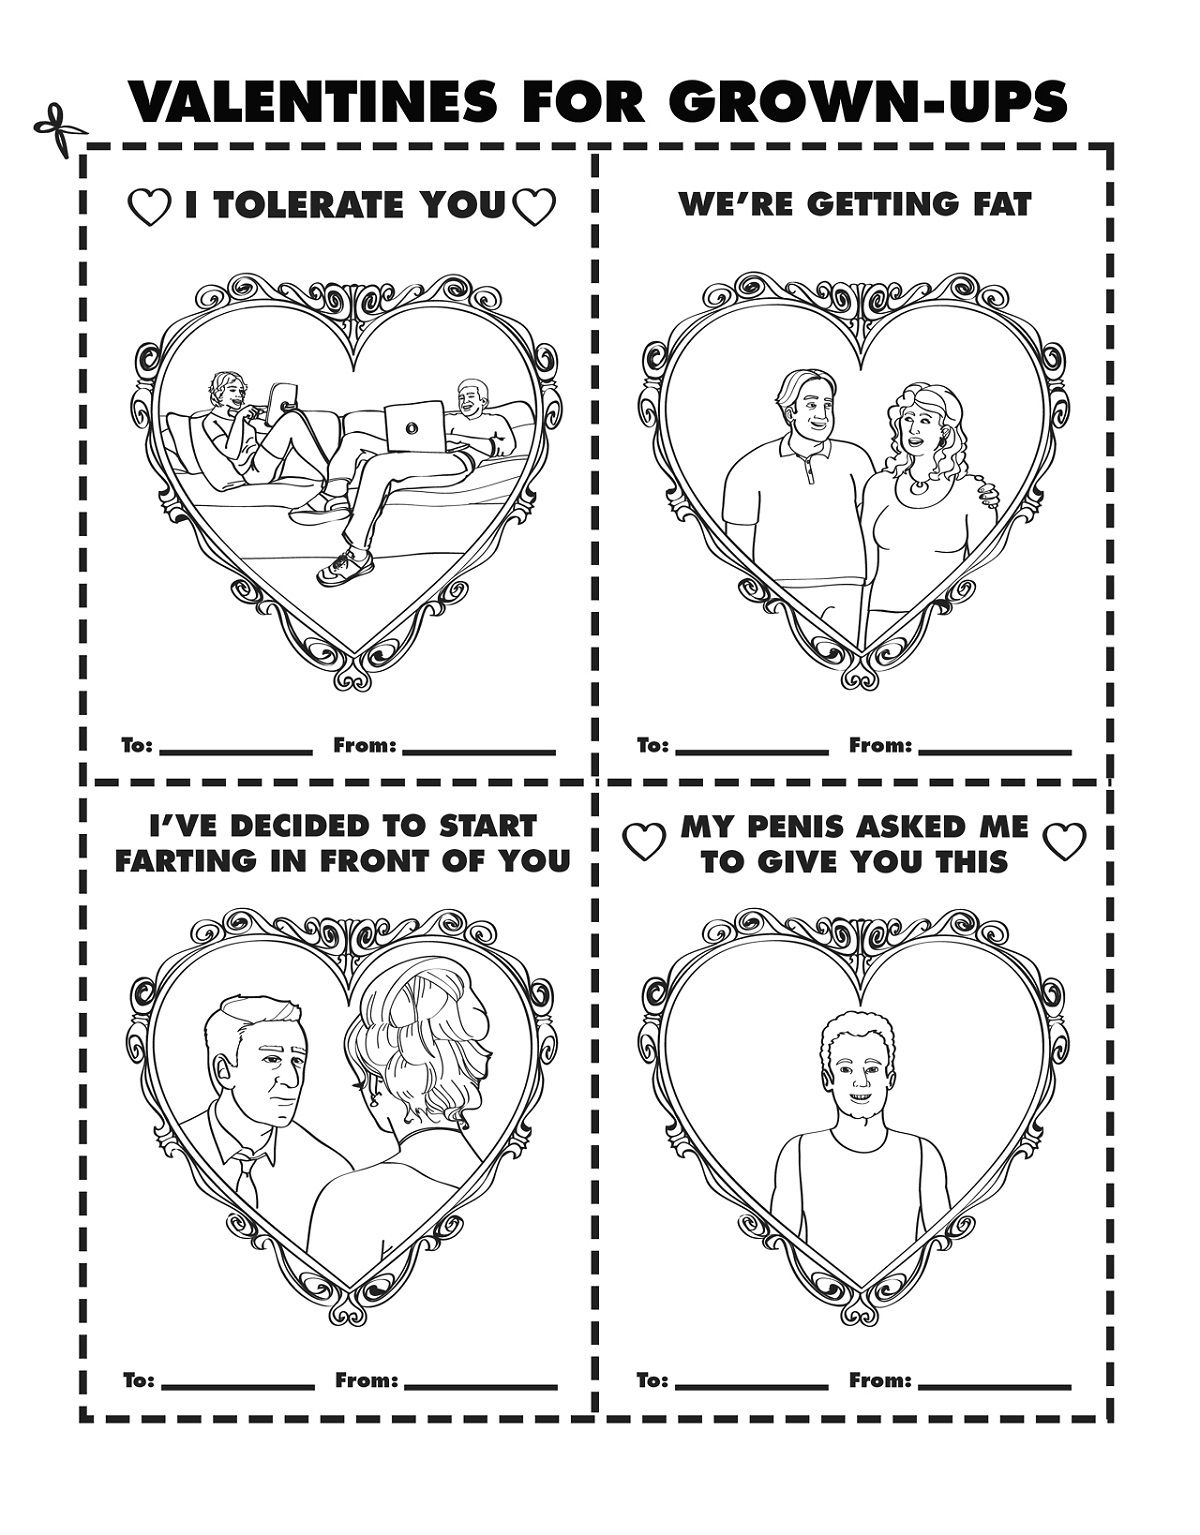 Valentine Coloring Books For Grown Ups Educative Printable